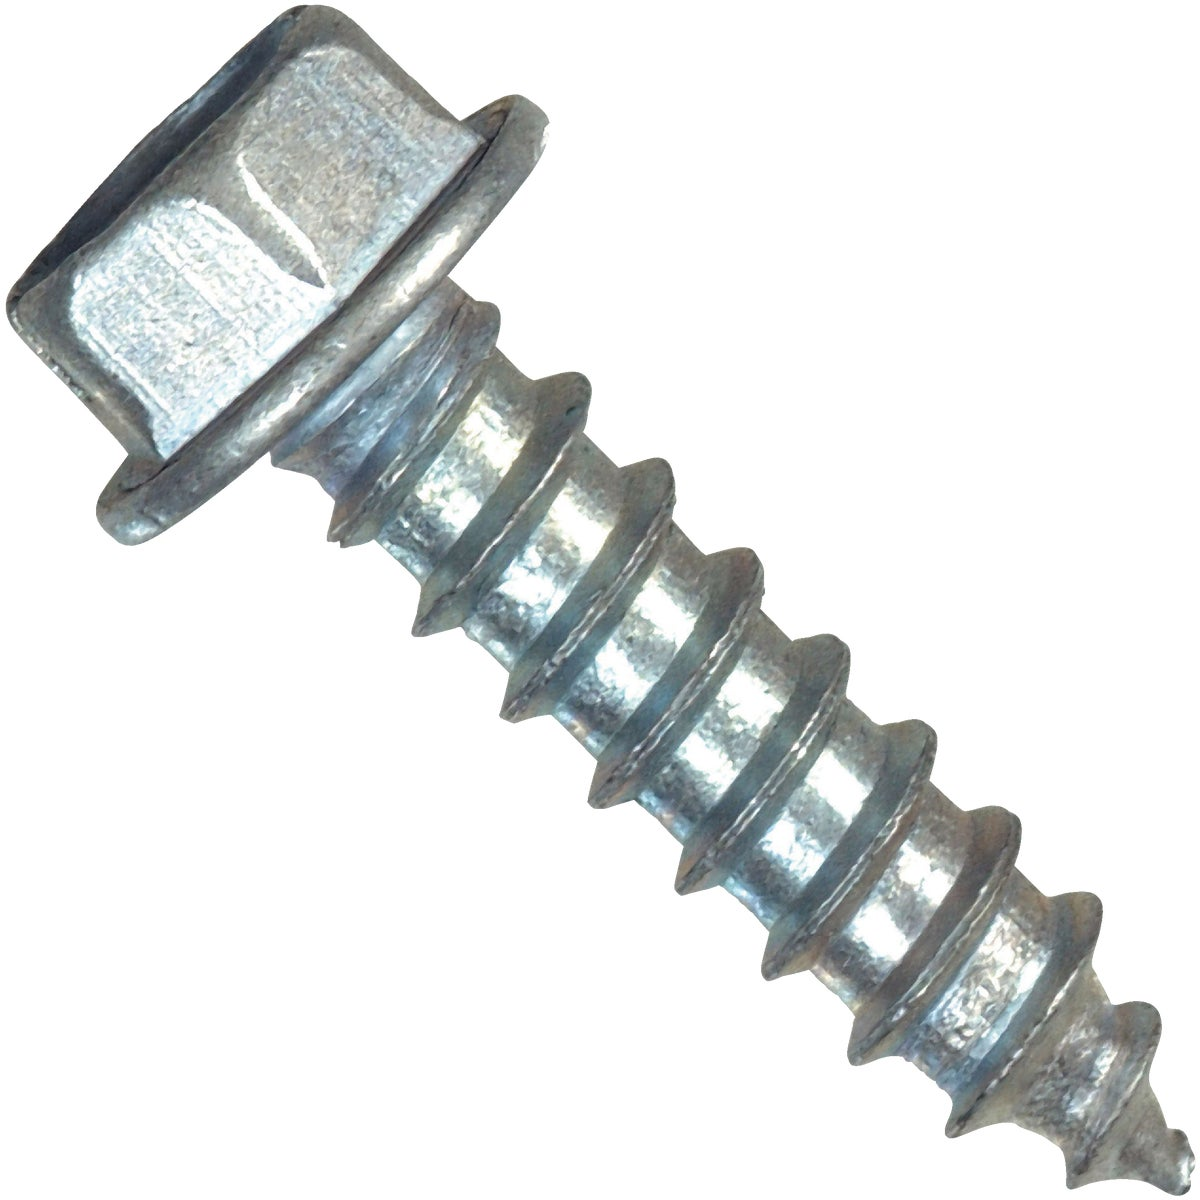 8X2 HWH SHT MTL SCREW - 70289 by Hillman Fastener